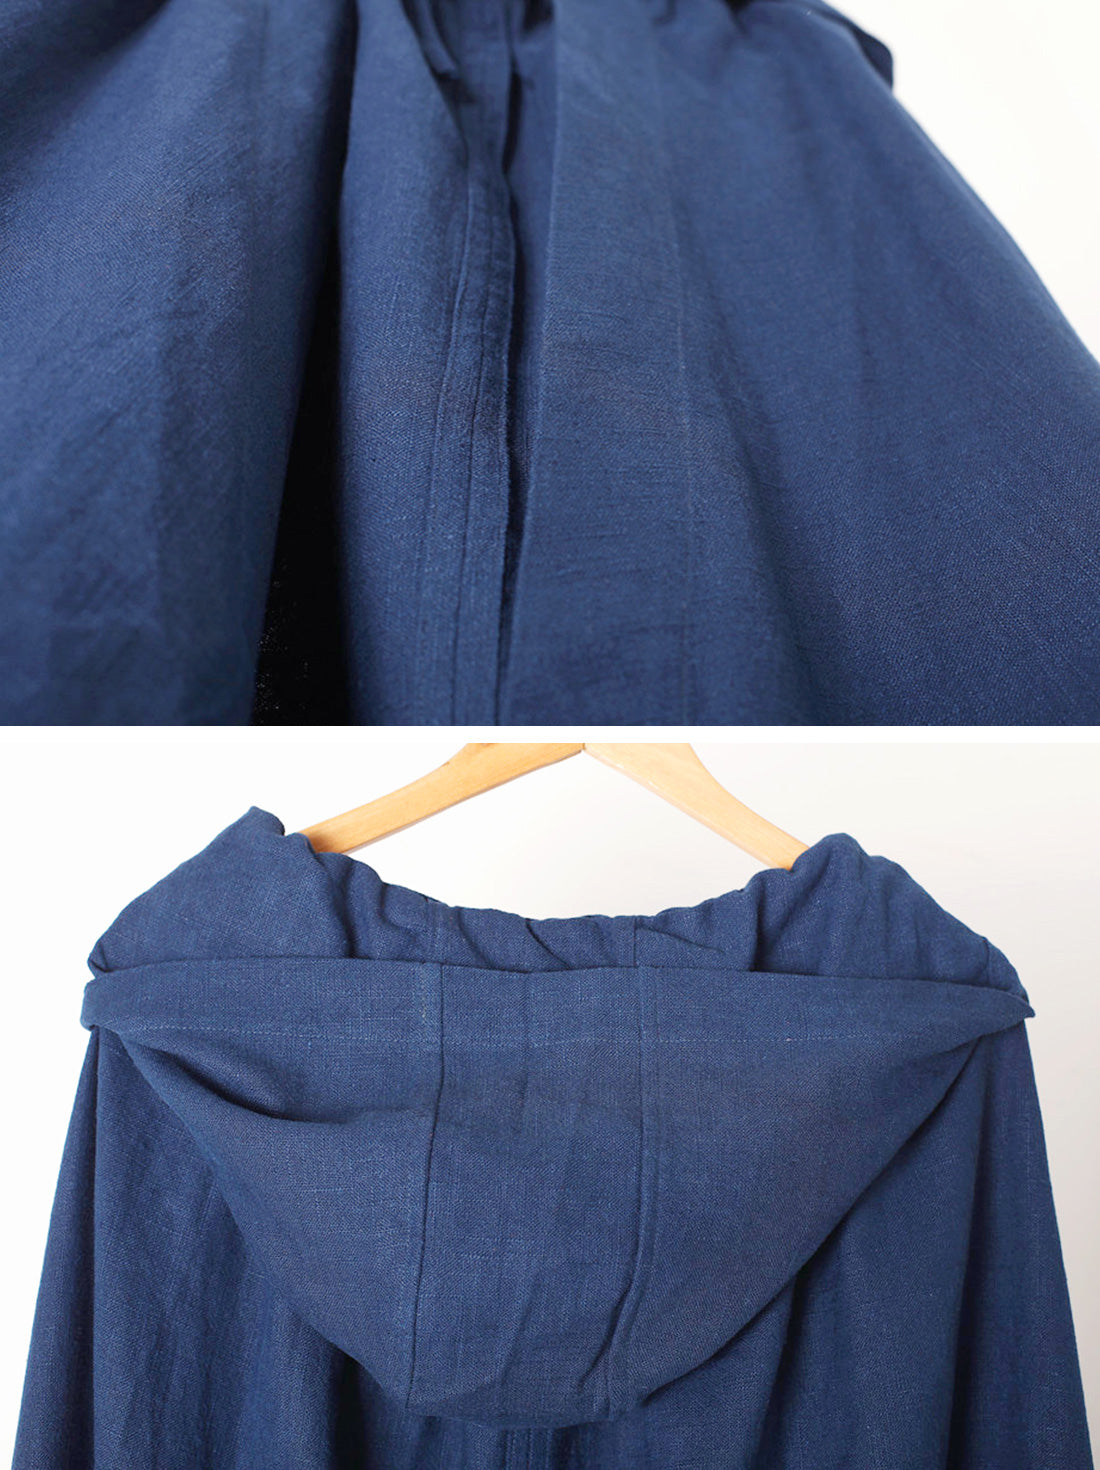 Solid Color Hooded Linen Cape Coat Details 2